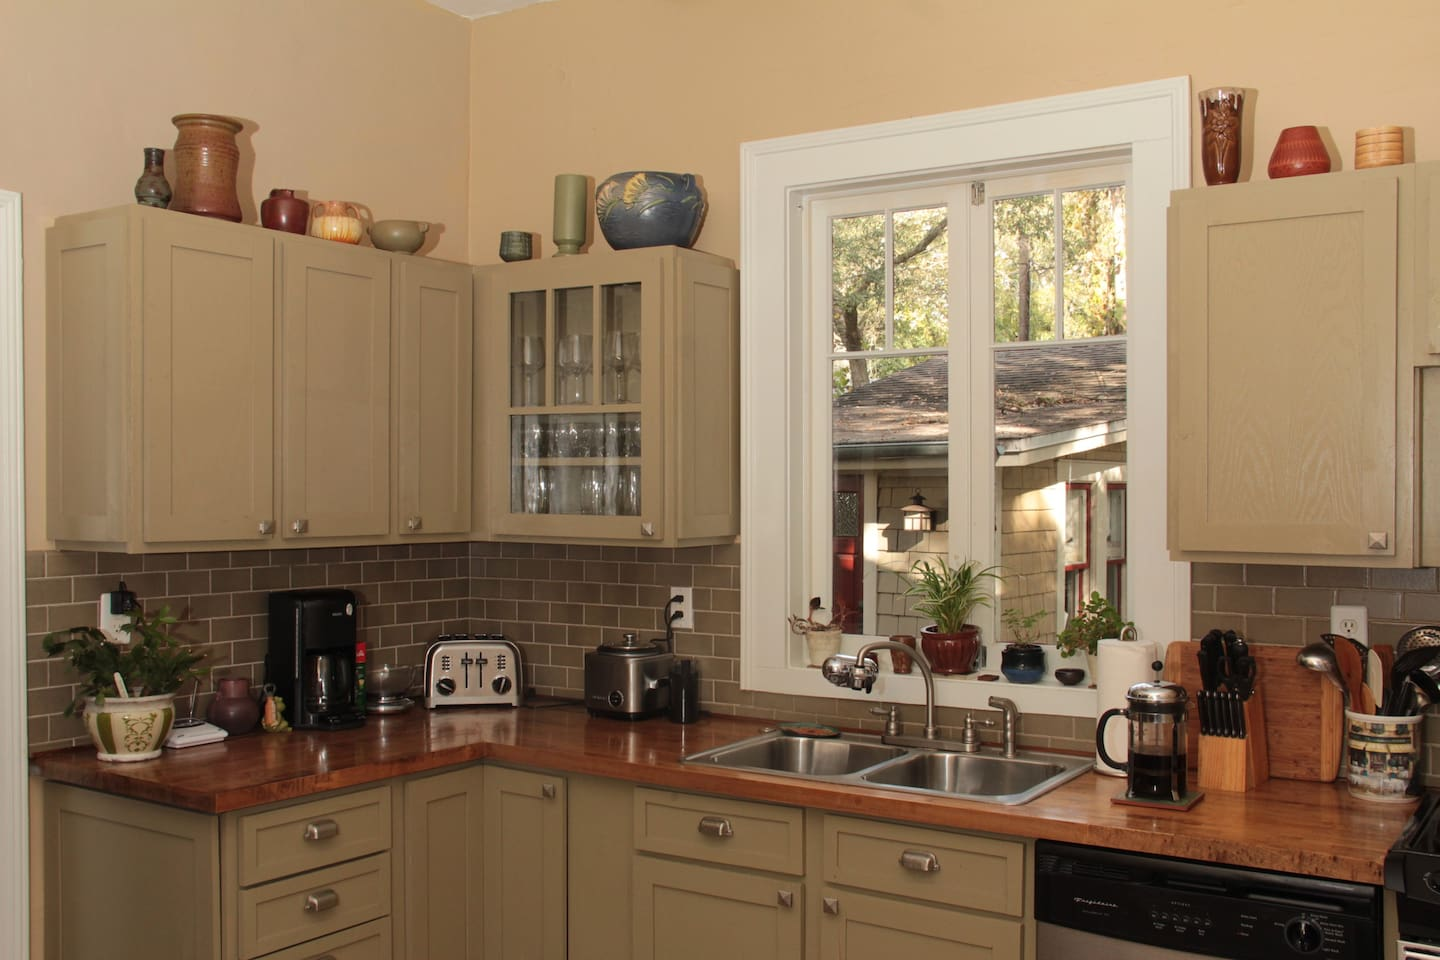 Large kitchen designed in period style of the 1920's